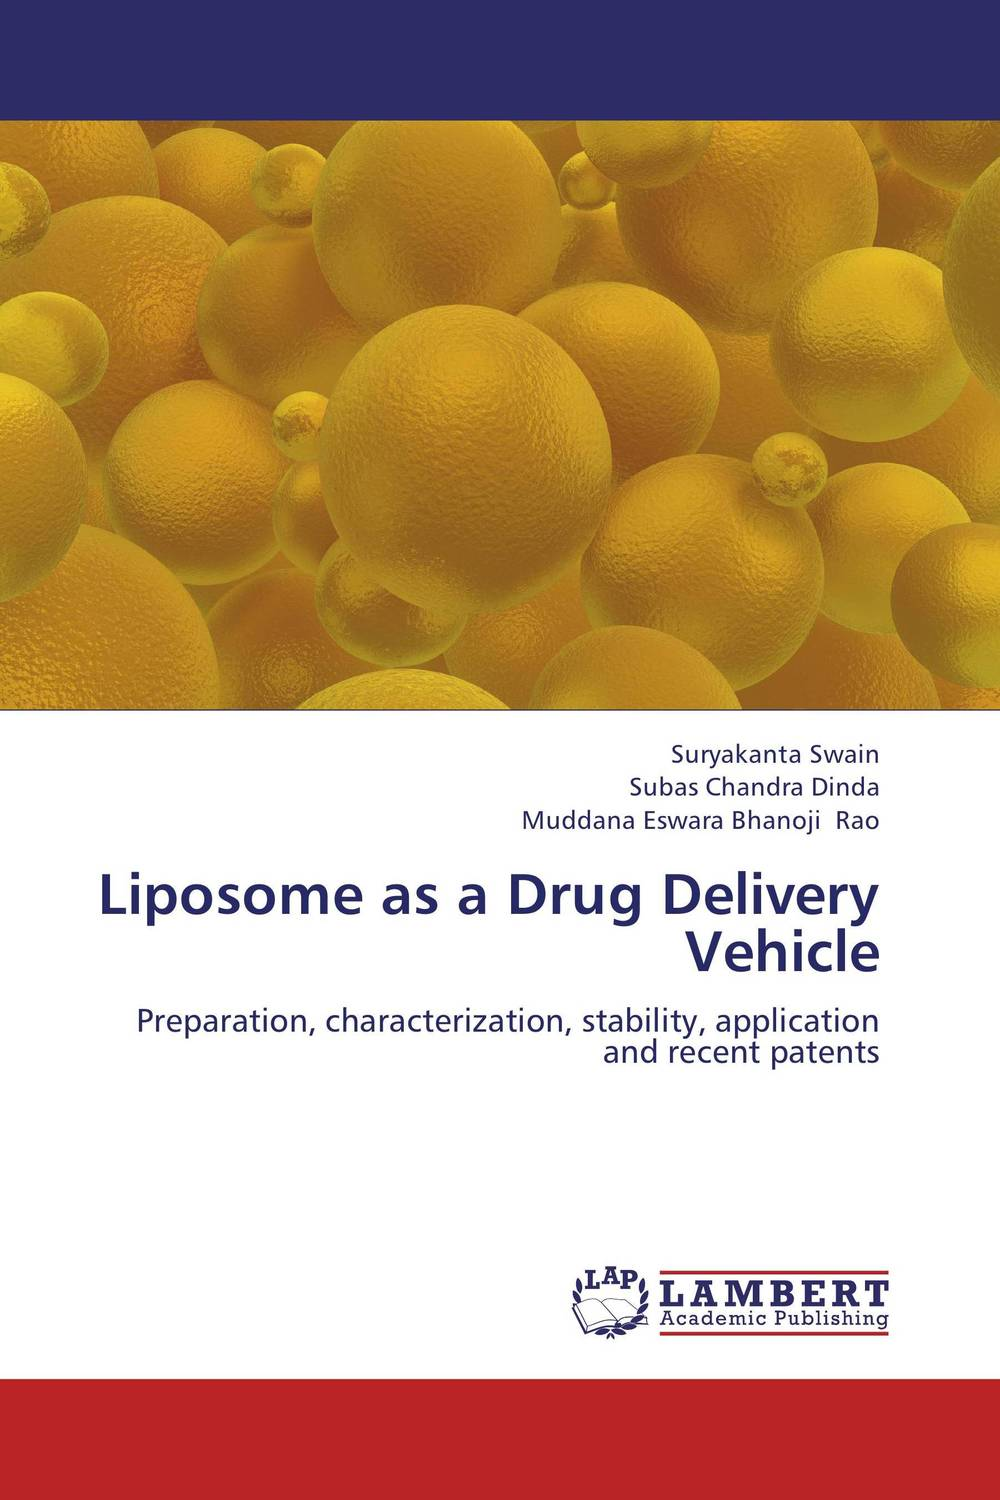 Liposome as a Drug Delivery Vehicle abhishek kumar sah sunil k jain and manmohan singh jangdey a recent approaches in topical drug delivery system